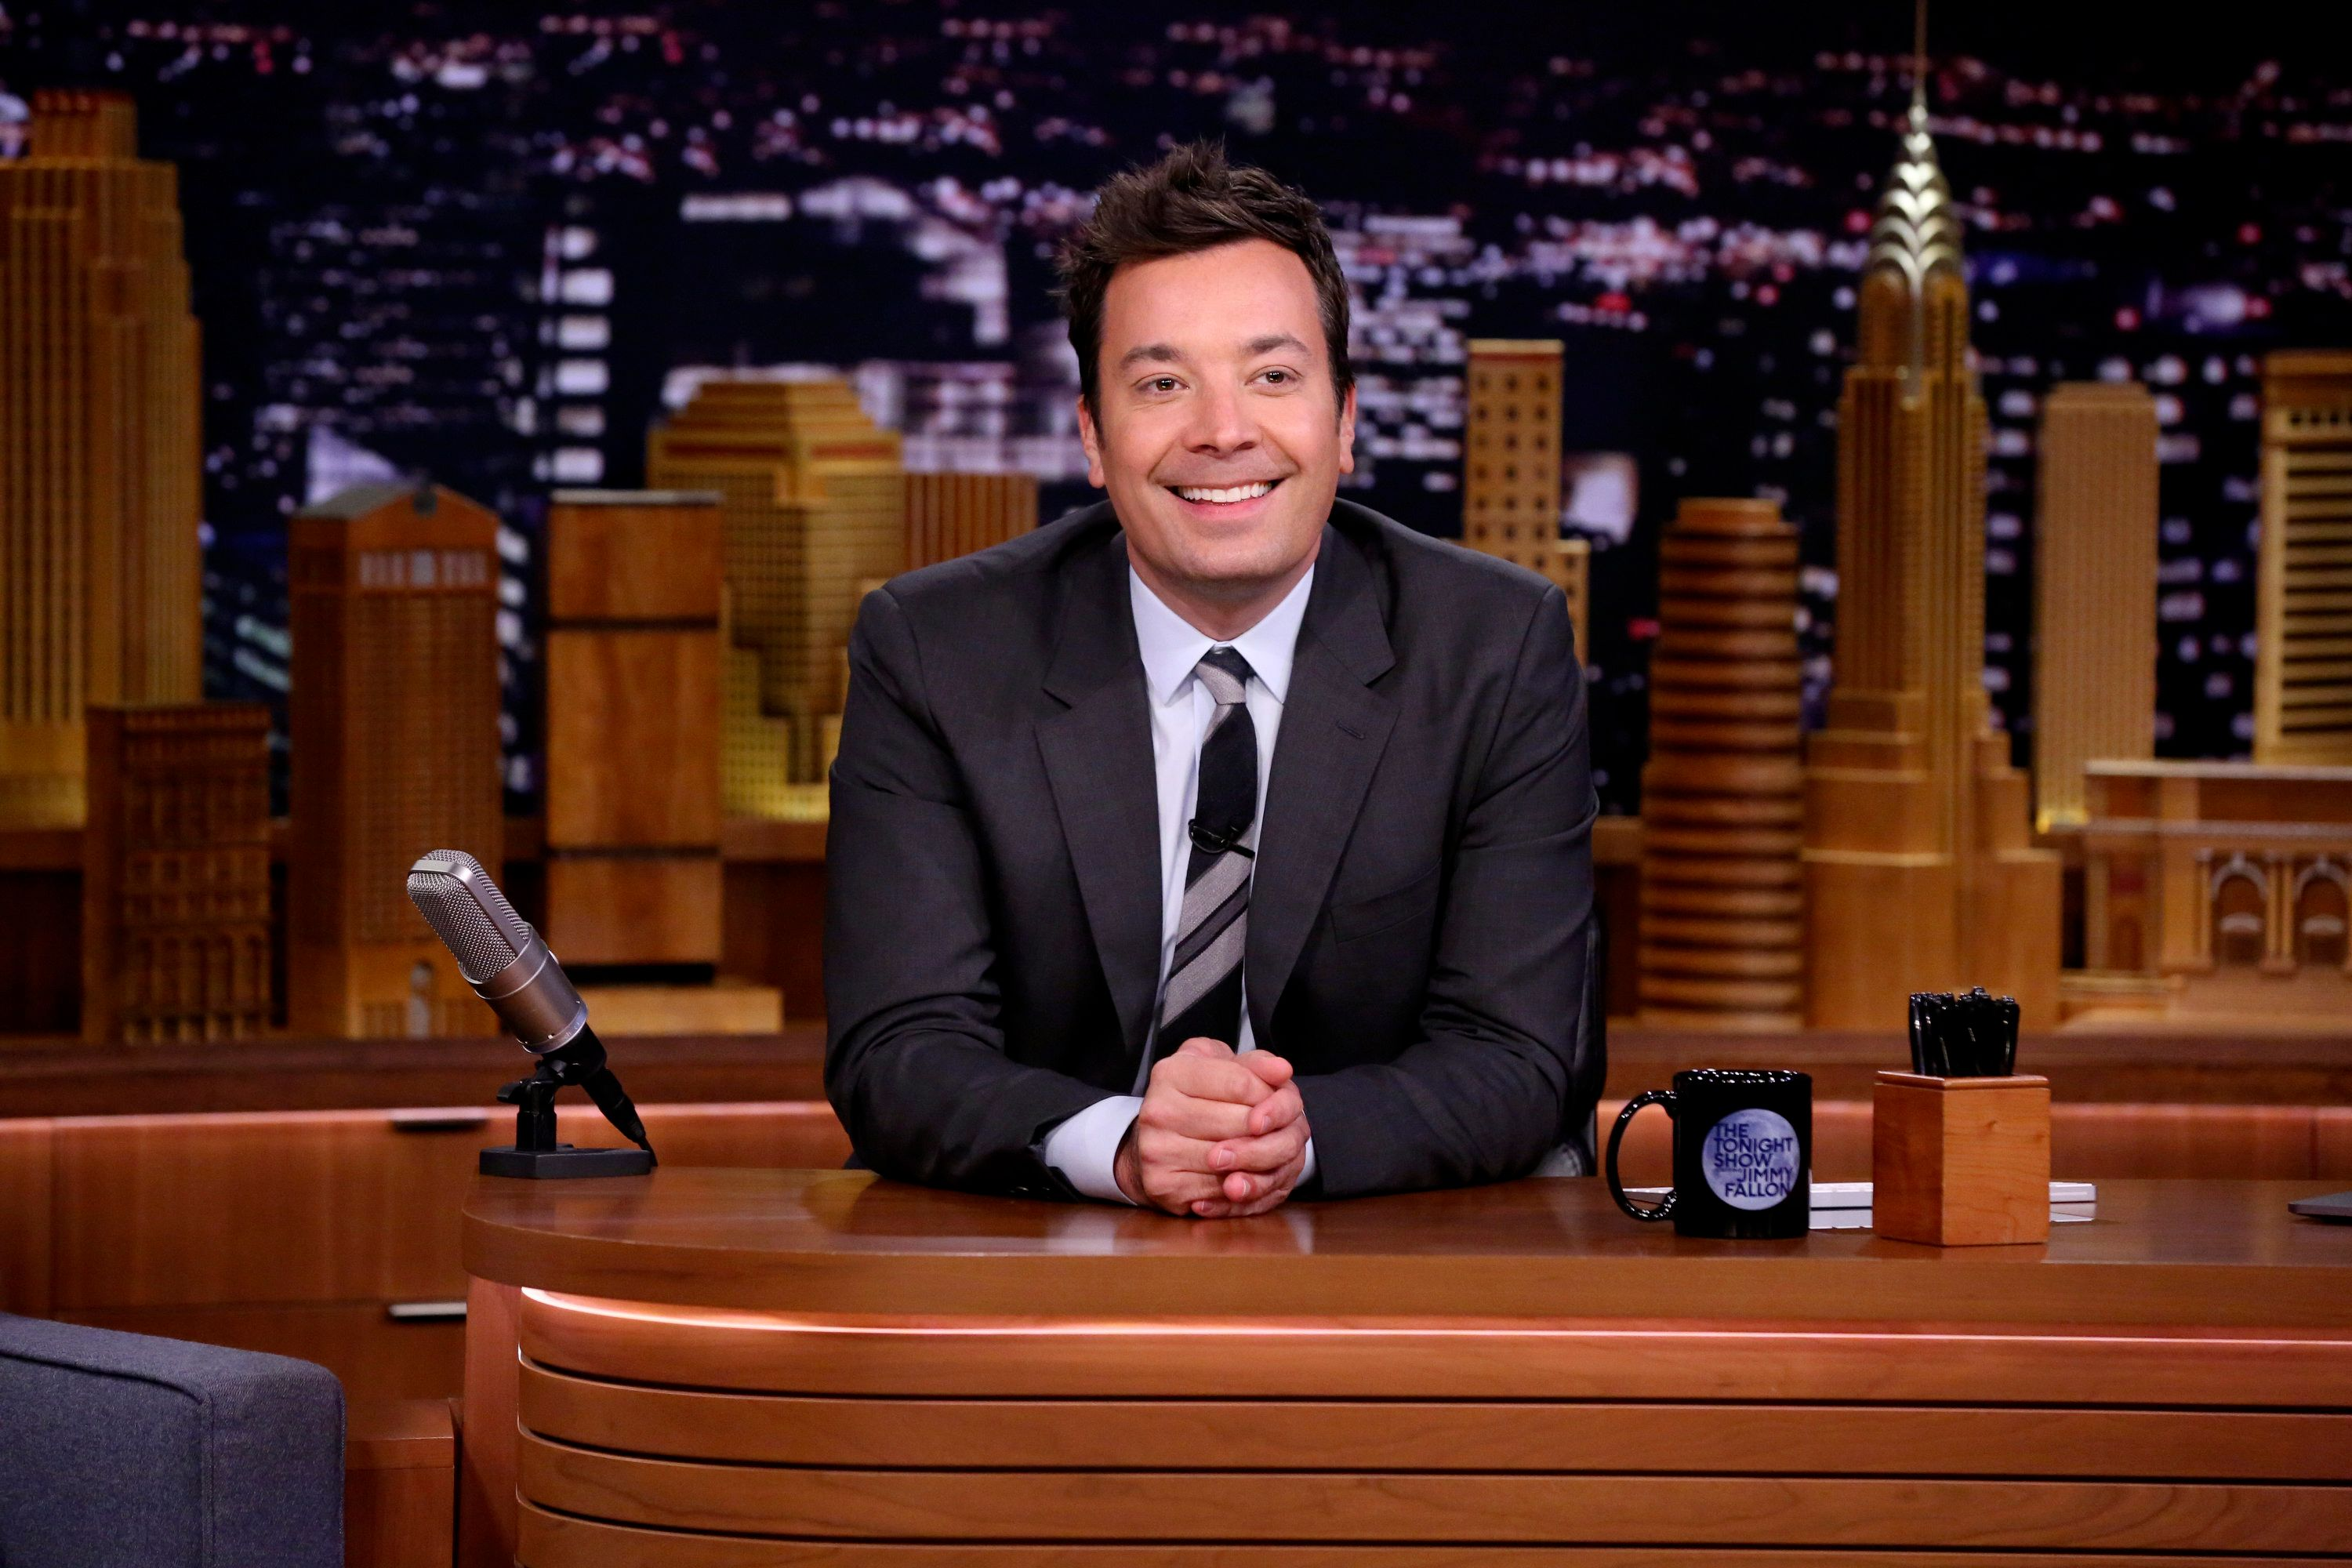 THE TONIGHT SHOW STARRING JIMMY FALLON -- Episode 0946 -- Pictured: Host Jimmy Fallon at his desk on October 23, 2018 -- (Photo by: Andrew Lipovsky/NBC/NBCU Photo Bank via Getty Images)